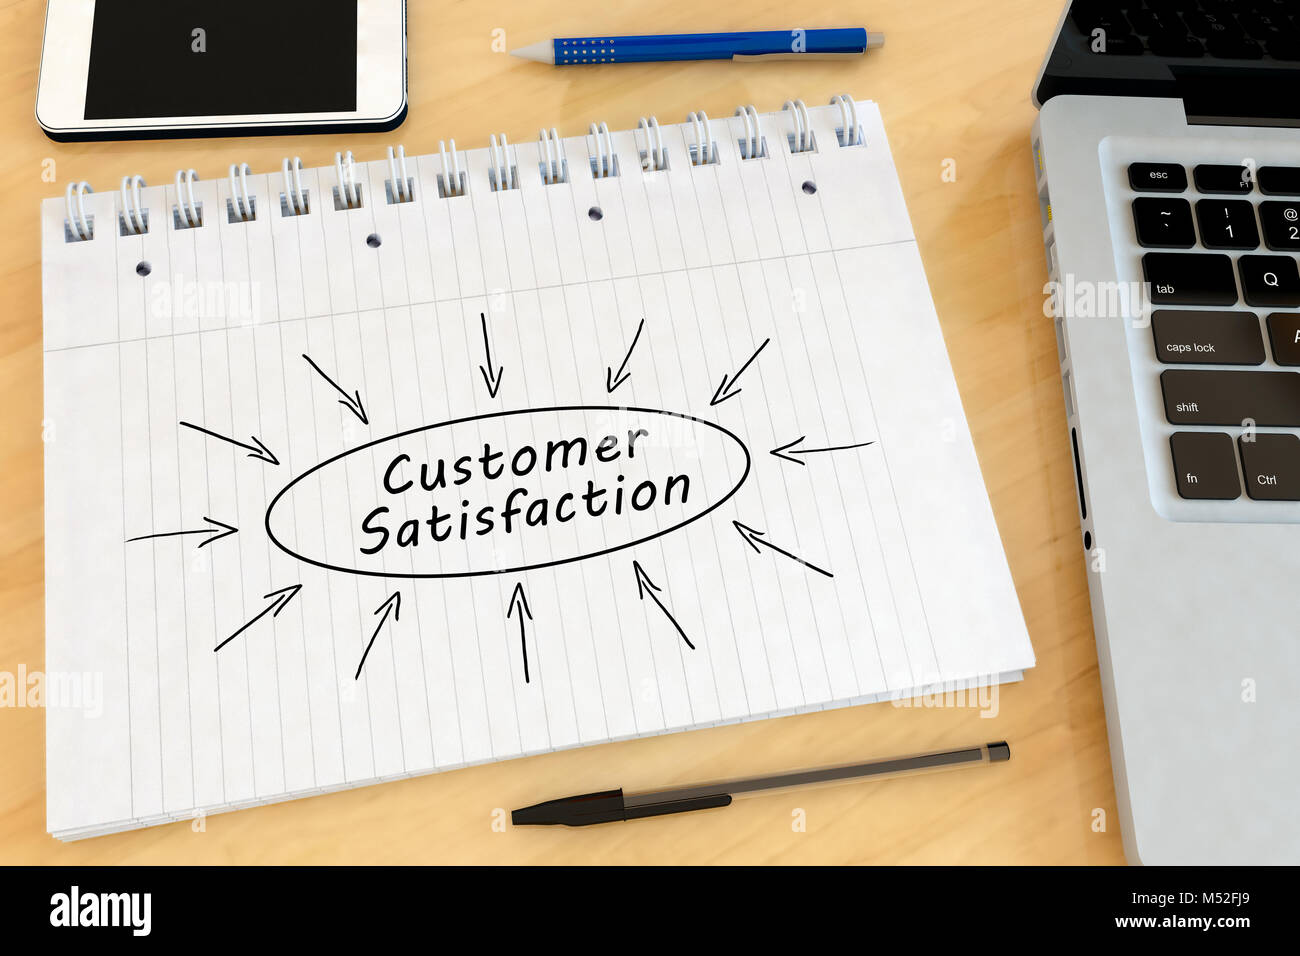 Customer Satisfaction text concept - Stock Image